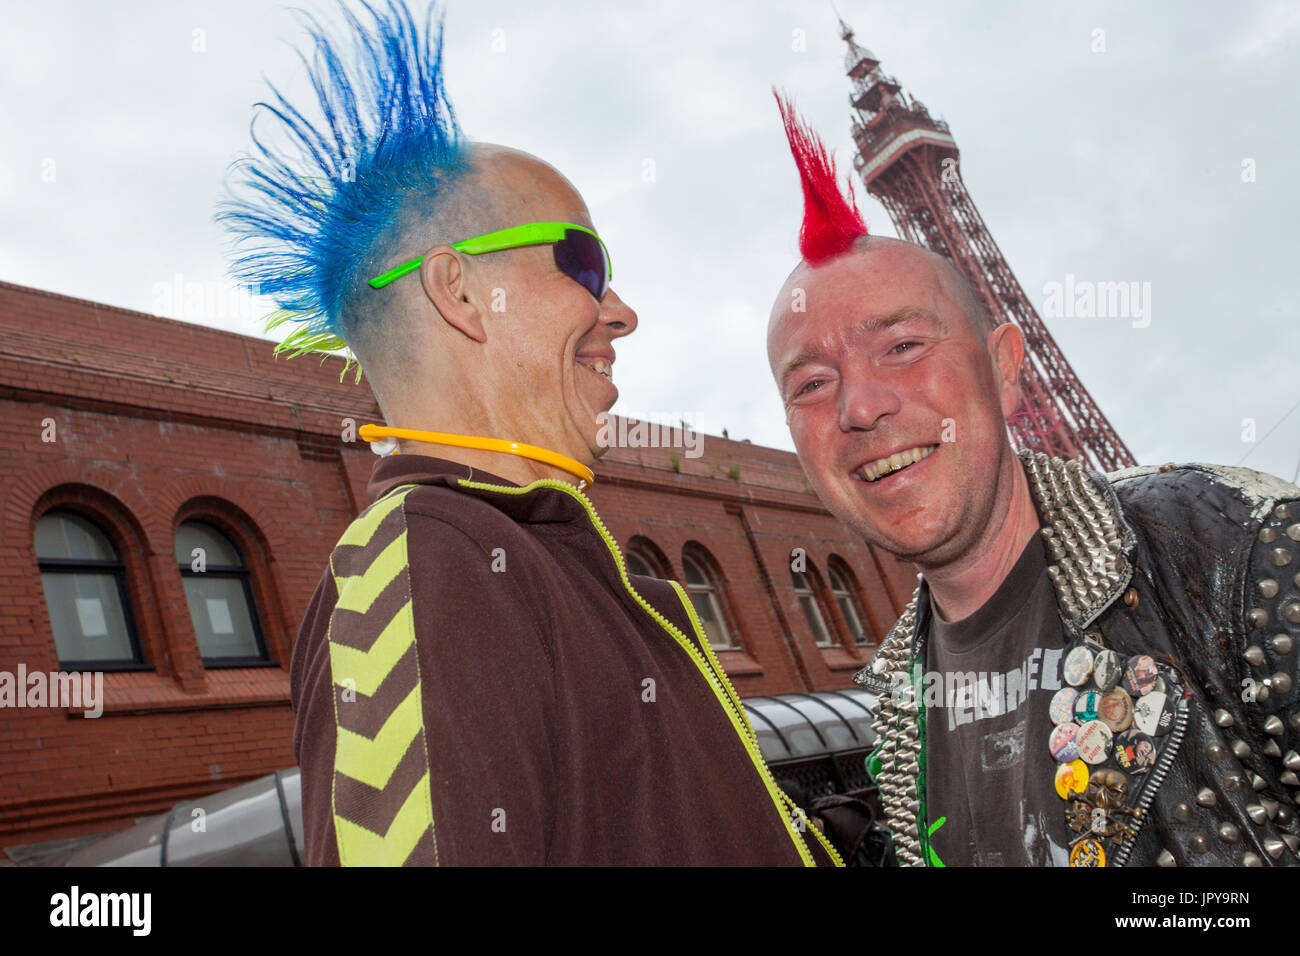 """Blackpool, Lancashire, UK. 3rd August, 2017. Rebellion Festival world's largest punk festival begins as thousands of punks arrive in Blackpool for international punk festival. At the beginning of August, Blackpool's Winter Gardens plays host to a massive line up of punk bands for the 21st edition of Rebellion Festival. There's a fringe fest running alongside the main event. Called """"At the Edge"""" with an art exhibition, vintage clothing and a dedicated Dr Martens stall. Credit; MediaWorldImages/AlamyLiveNews. - Stock Image"""